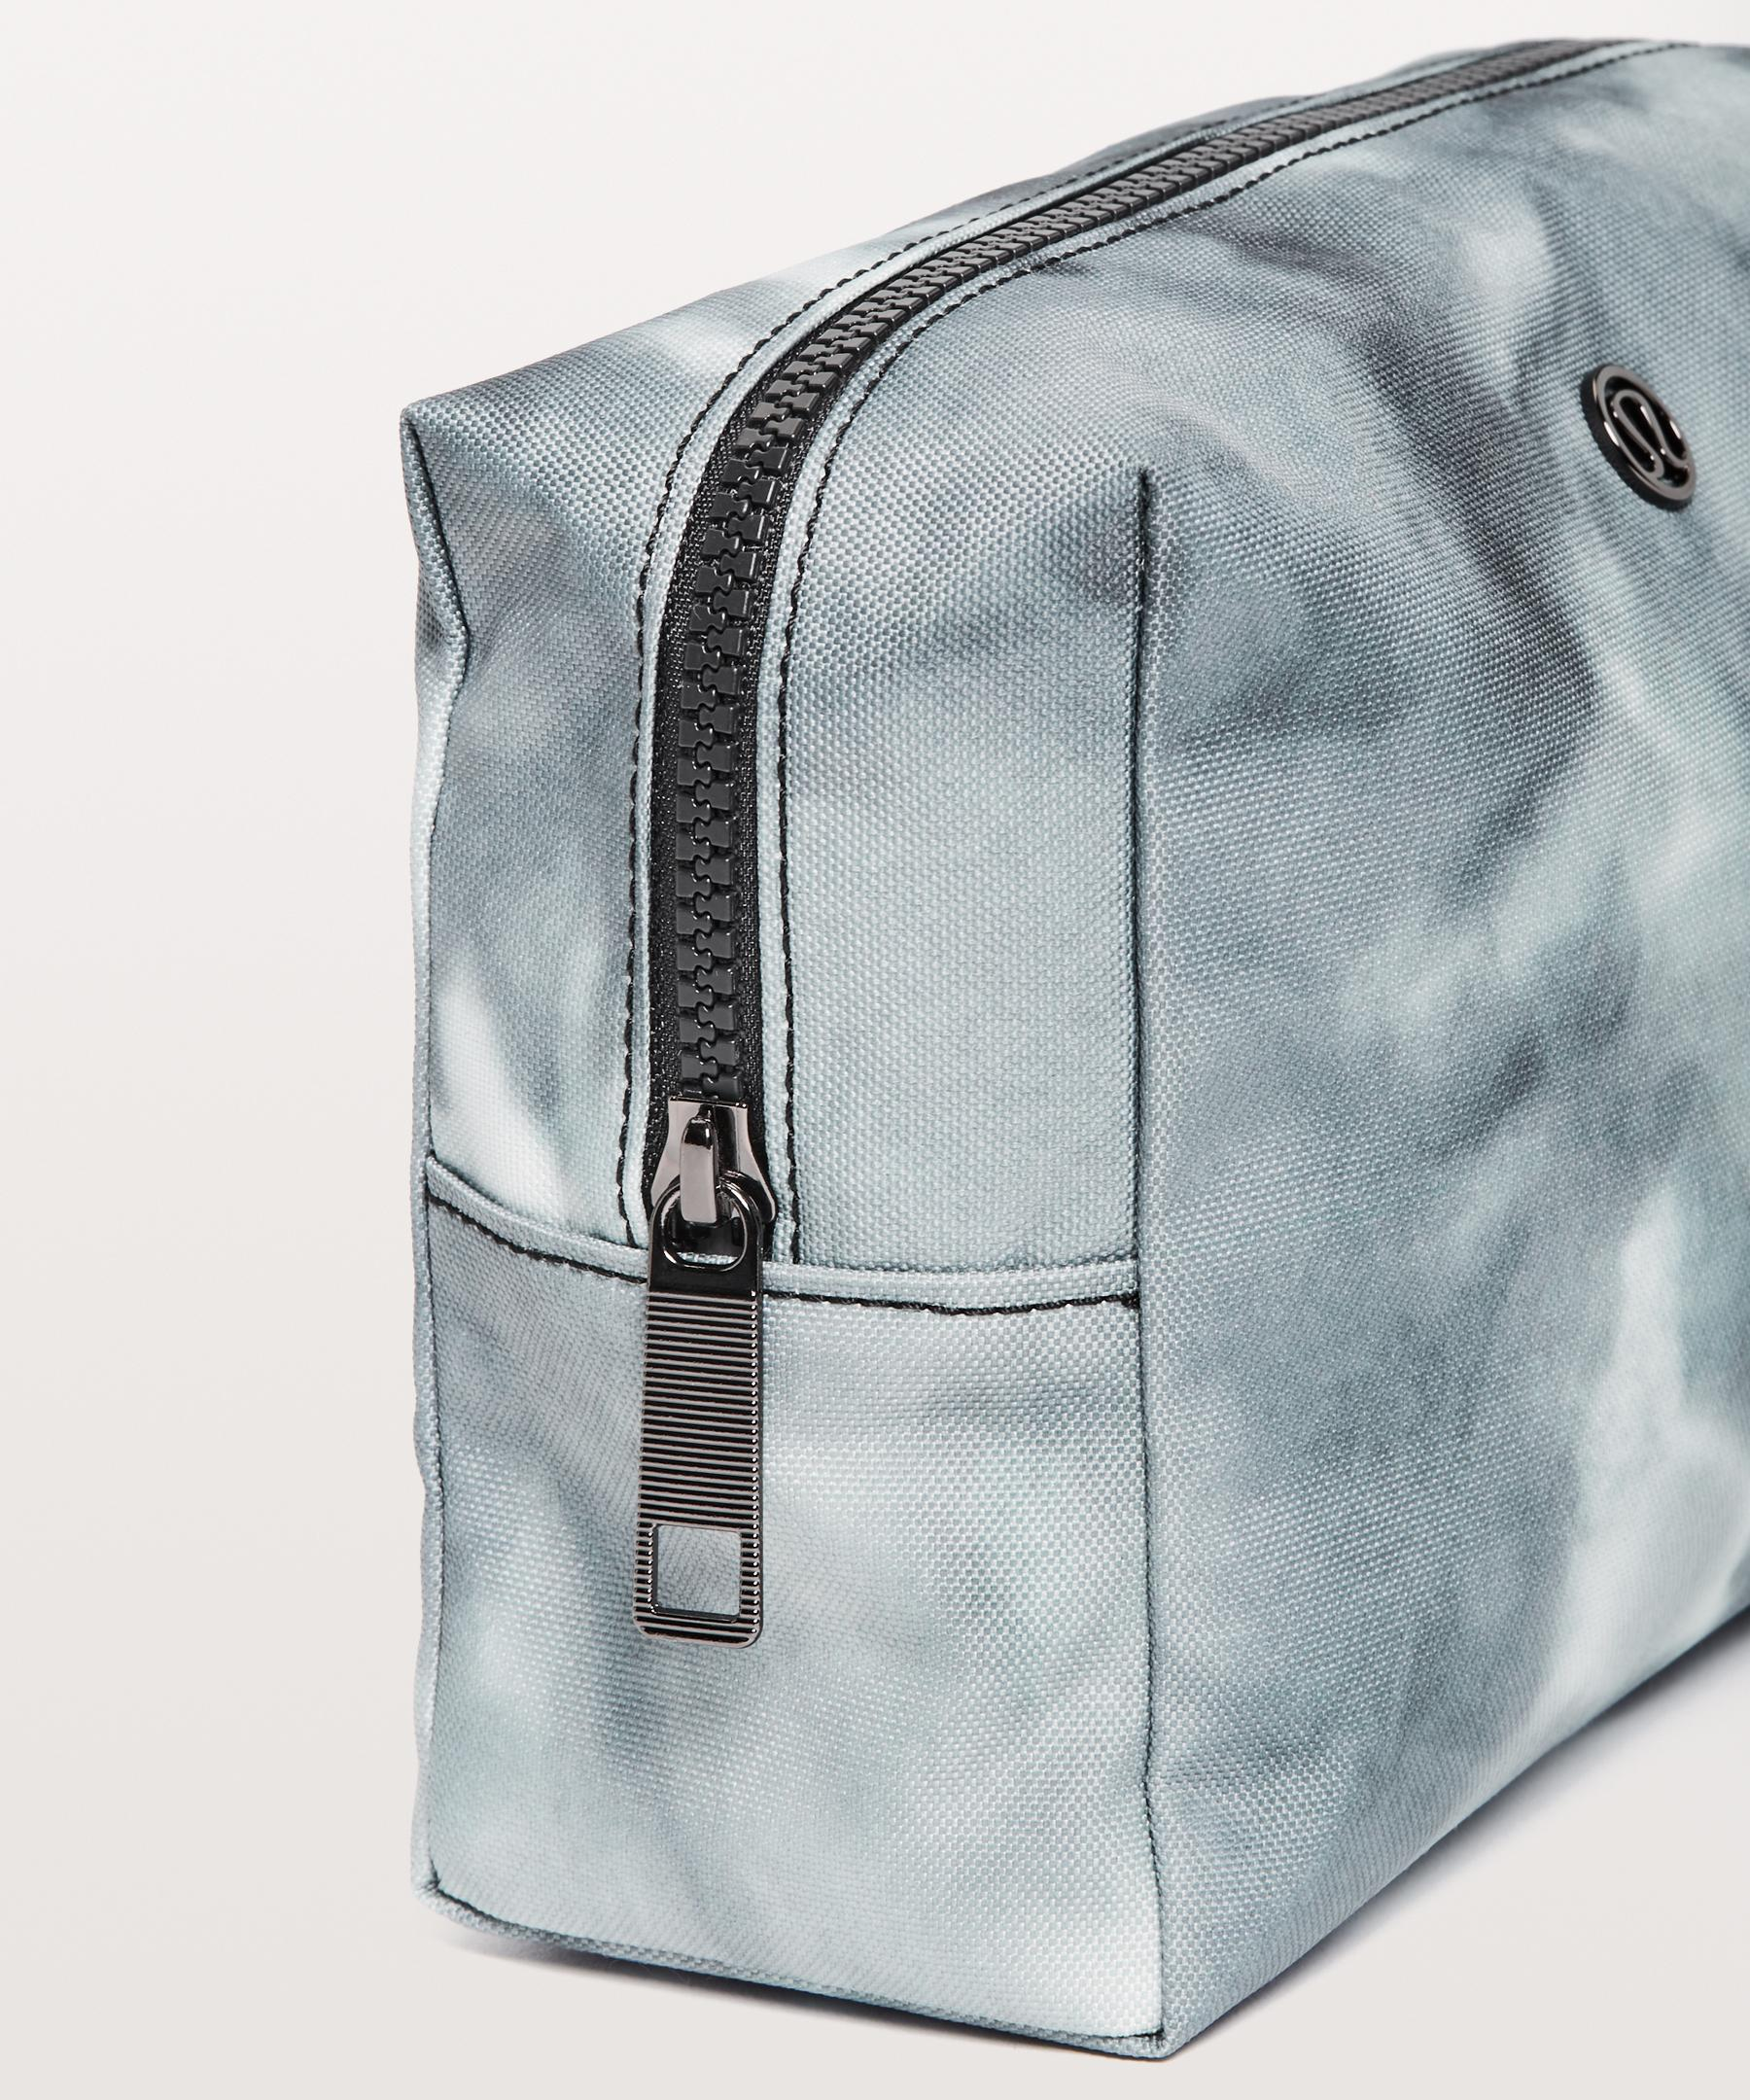 Lyst - lululemon athletica All Your Small Things Pouch  4l in Gray - Save  50% 4d9555855cc1e